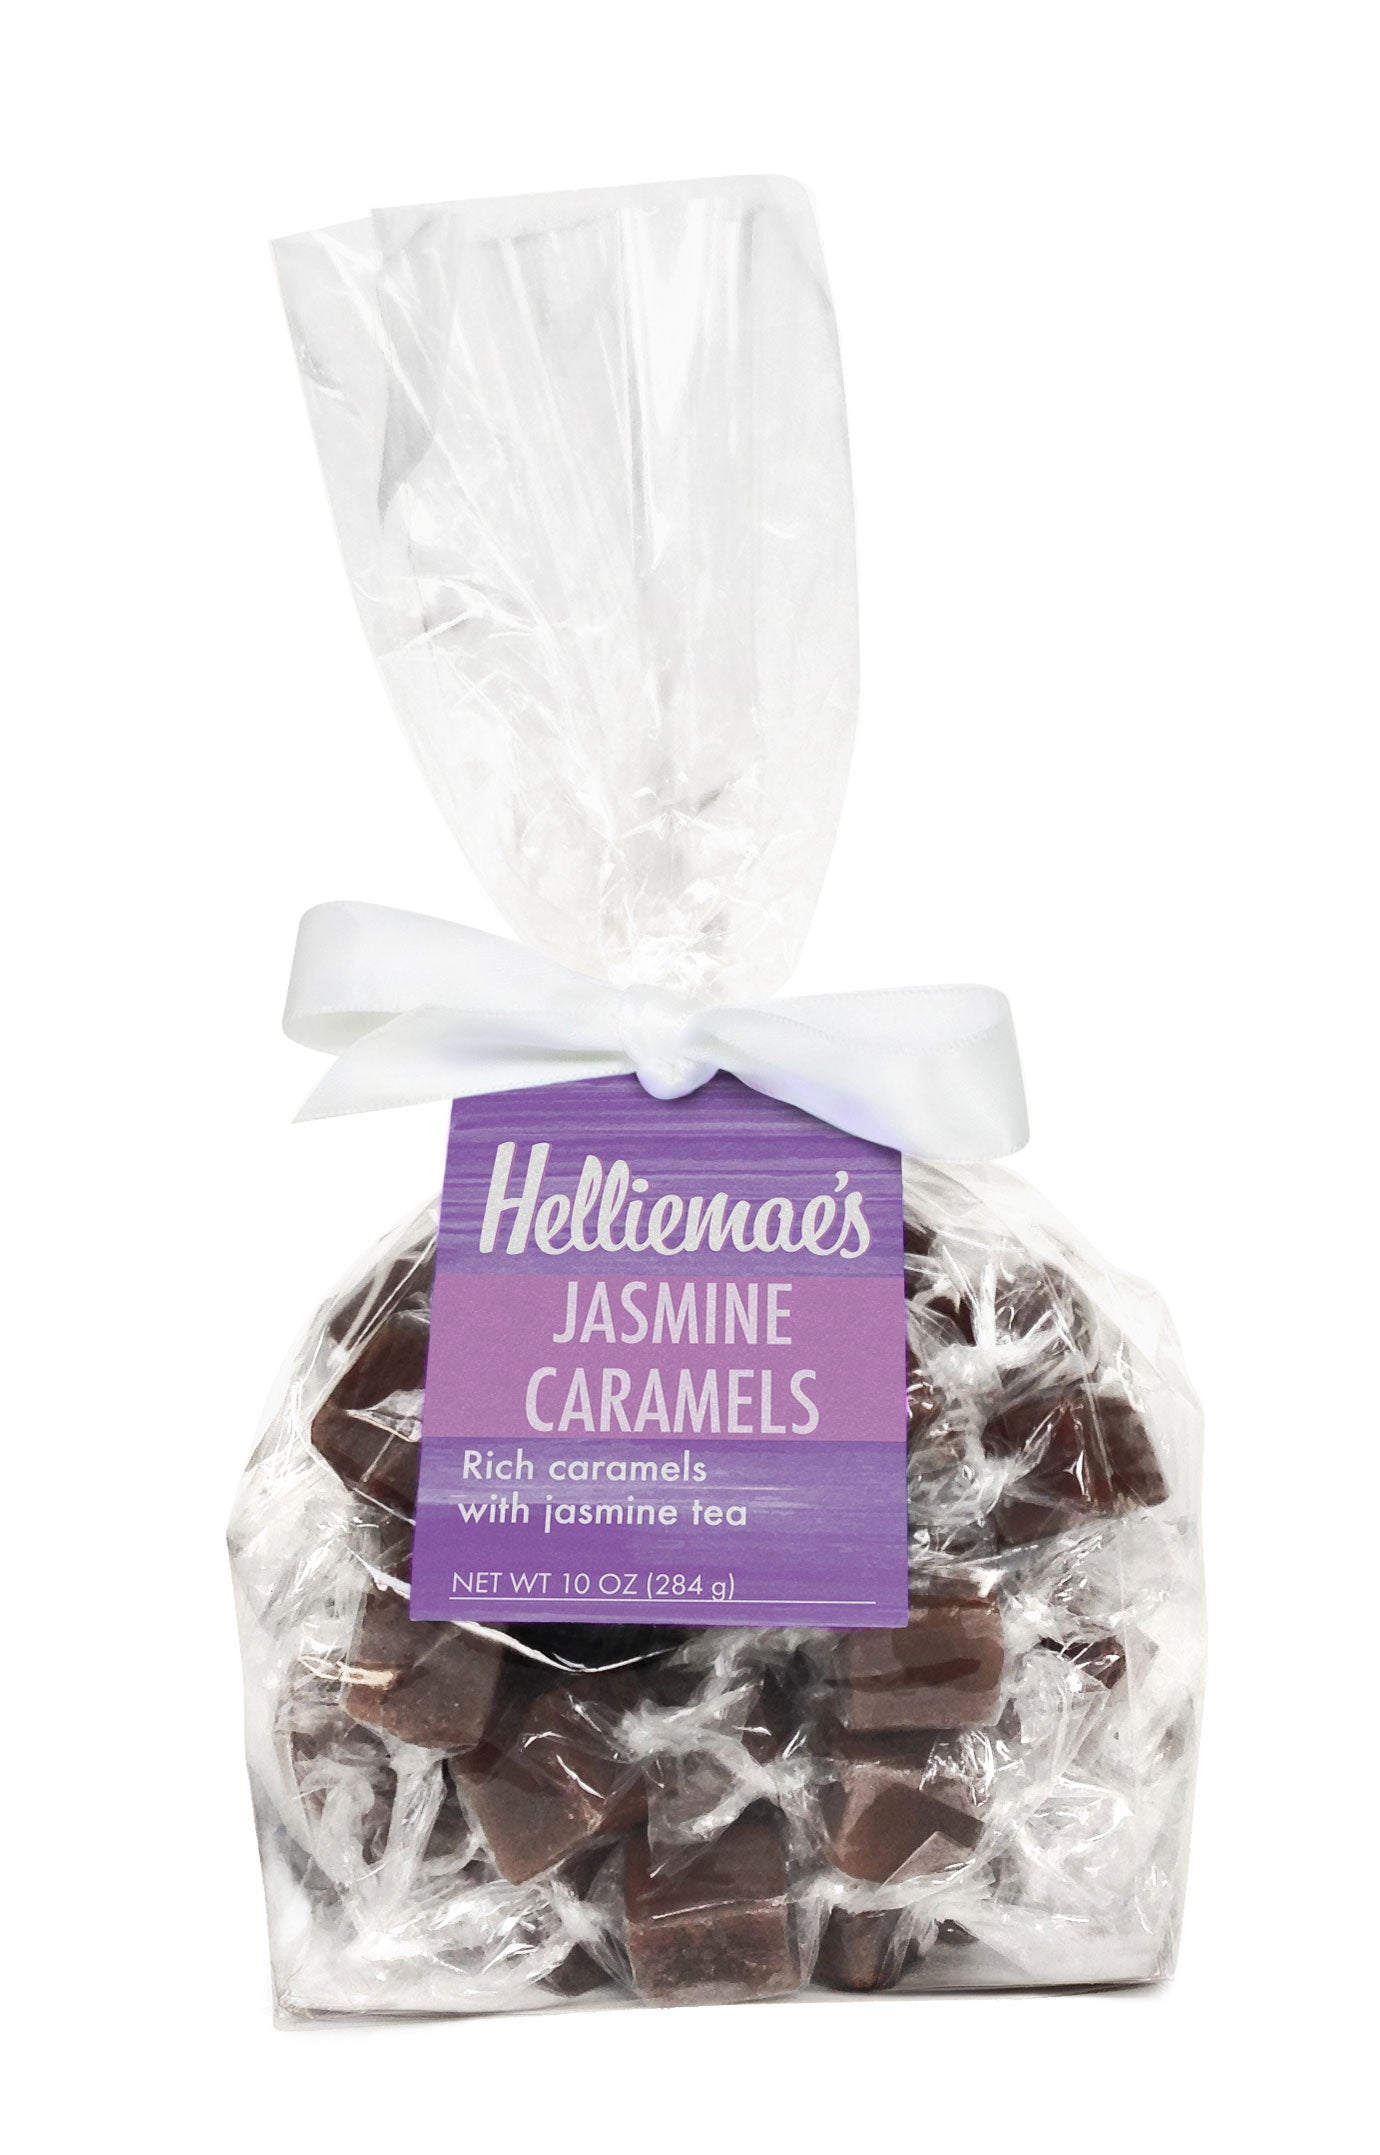 Helliemae's Jasmine Caramels large gift bag, clear cello bag with gathered top, fastened with white satin ribbon and colorful lavender hangtag, with effect of milk paint on a barn wall.